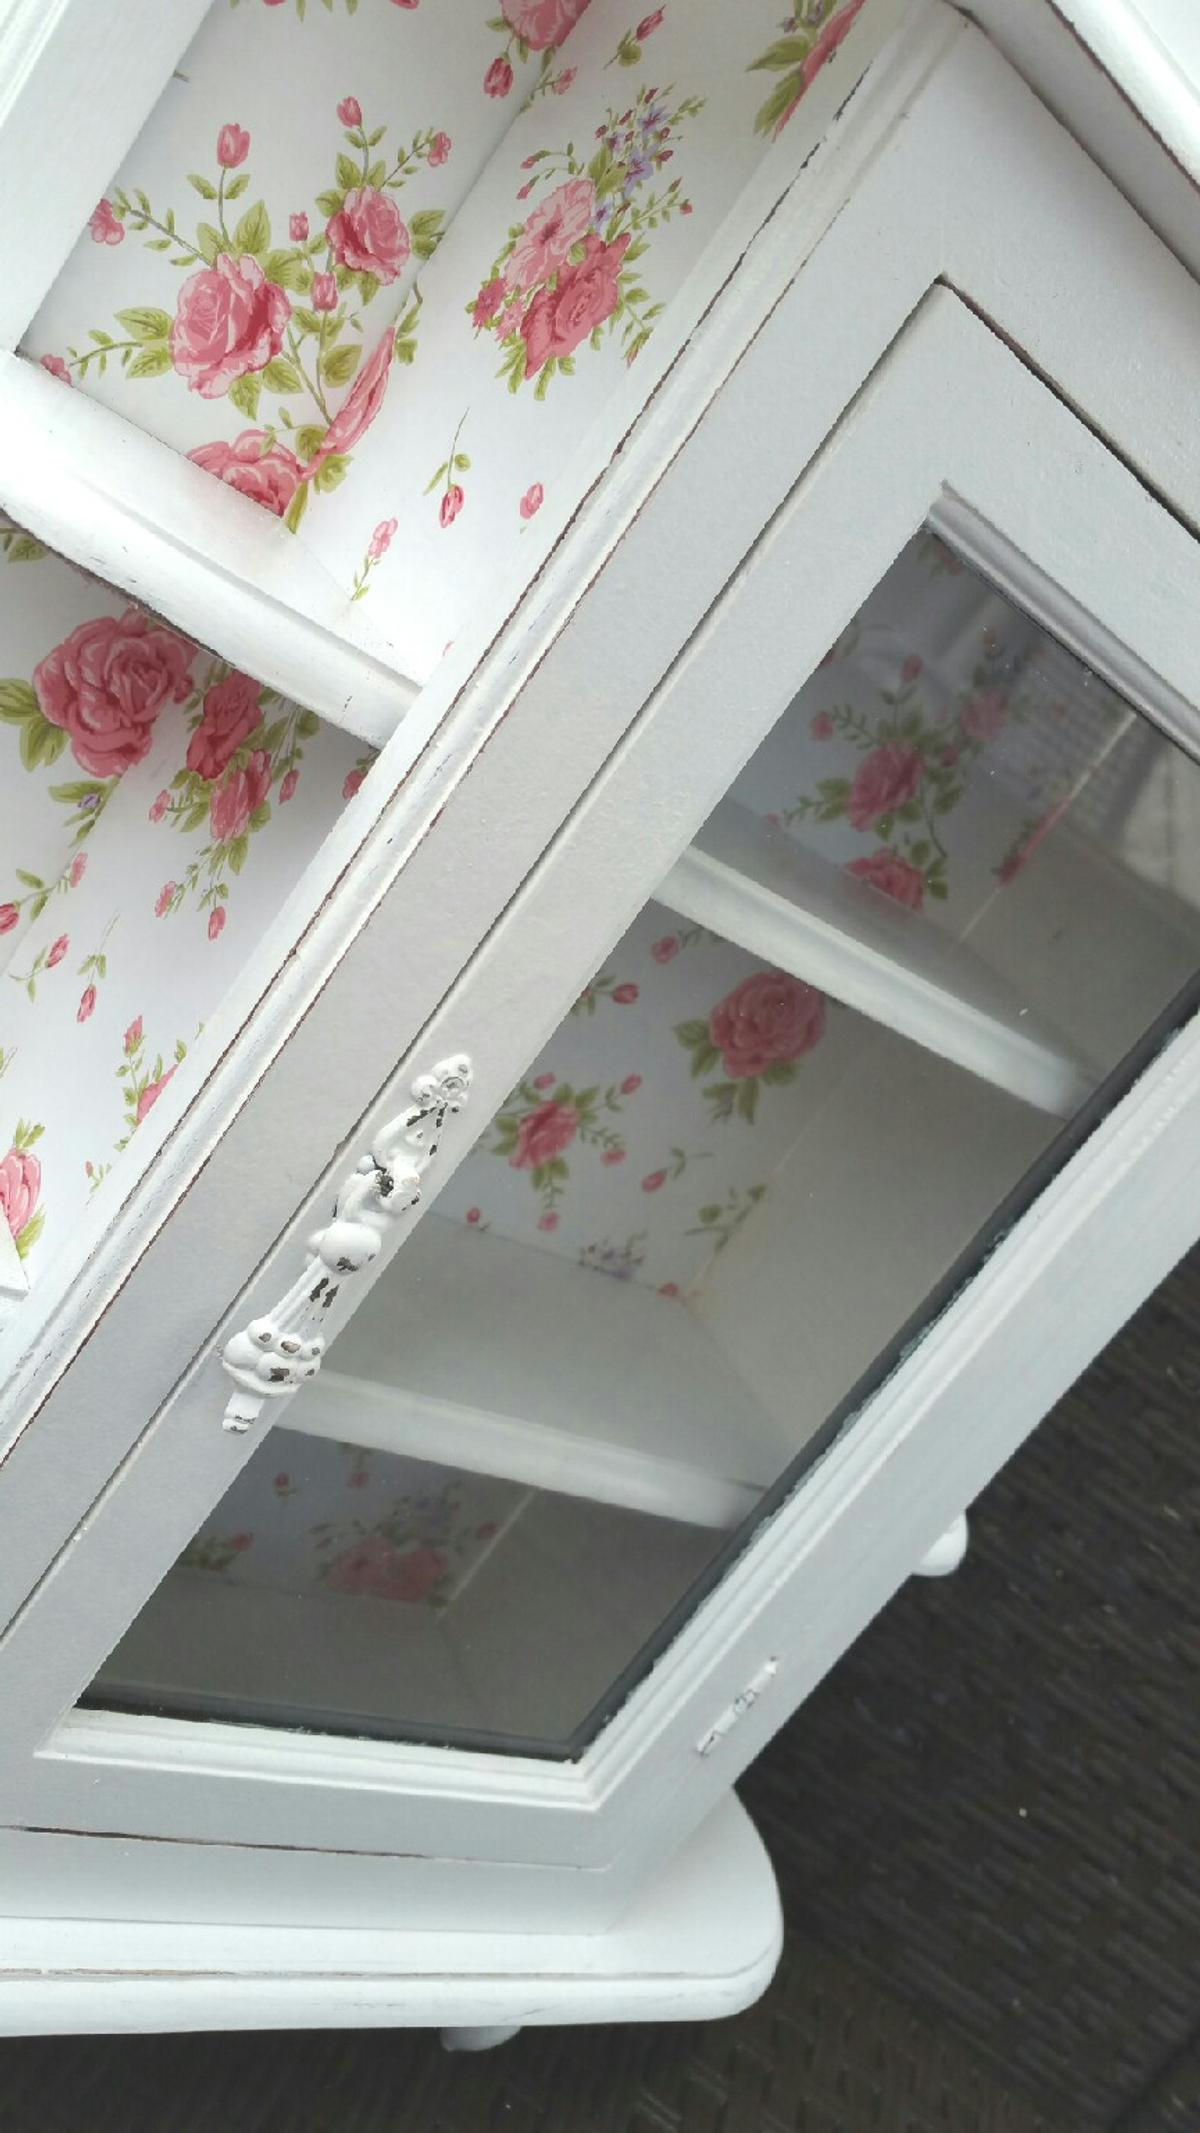 Shabby Chic Cuxhaven Süße Vitrine Shabby Chic Weiß Rosen In 27478 Cuxhaven For